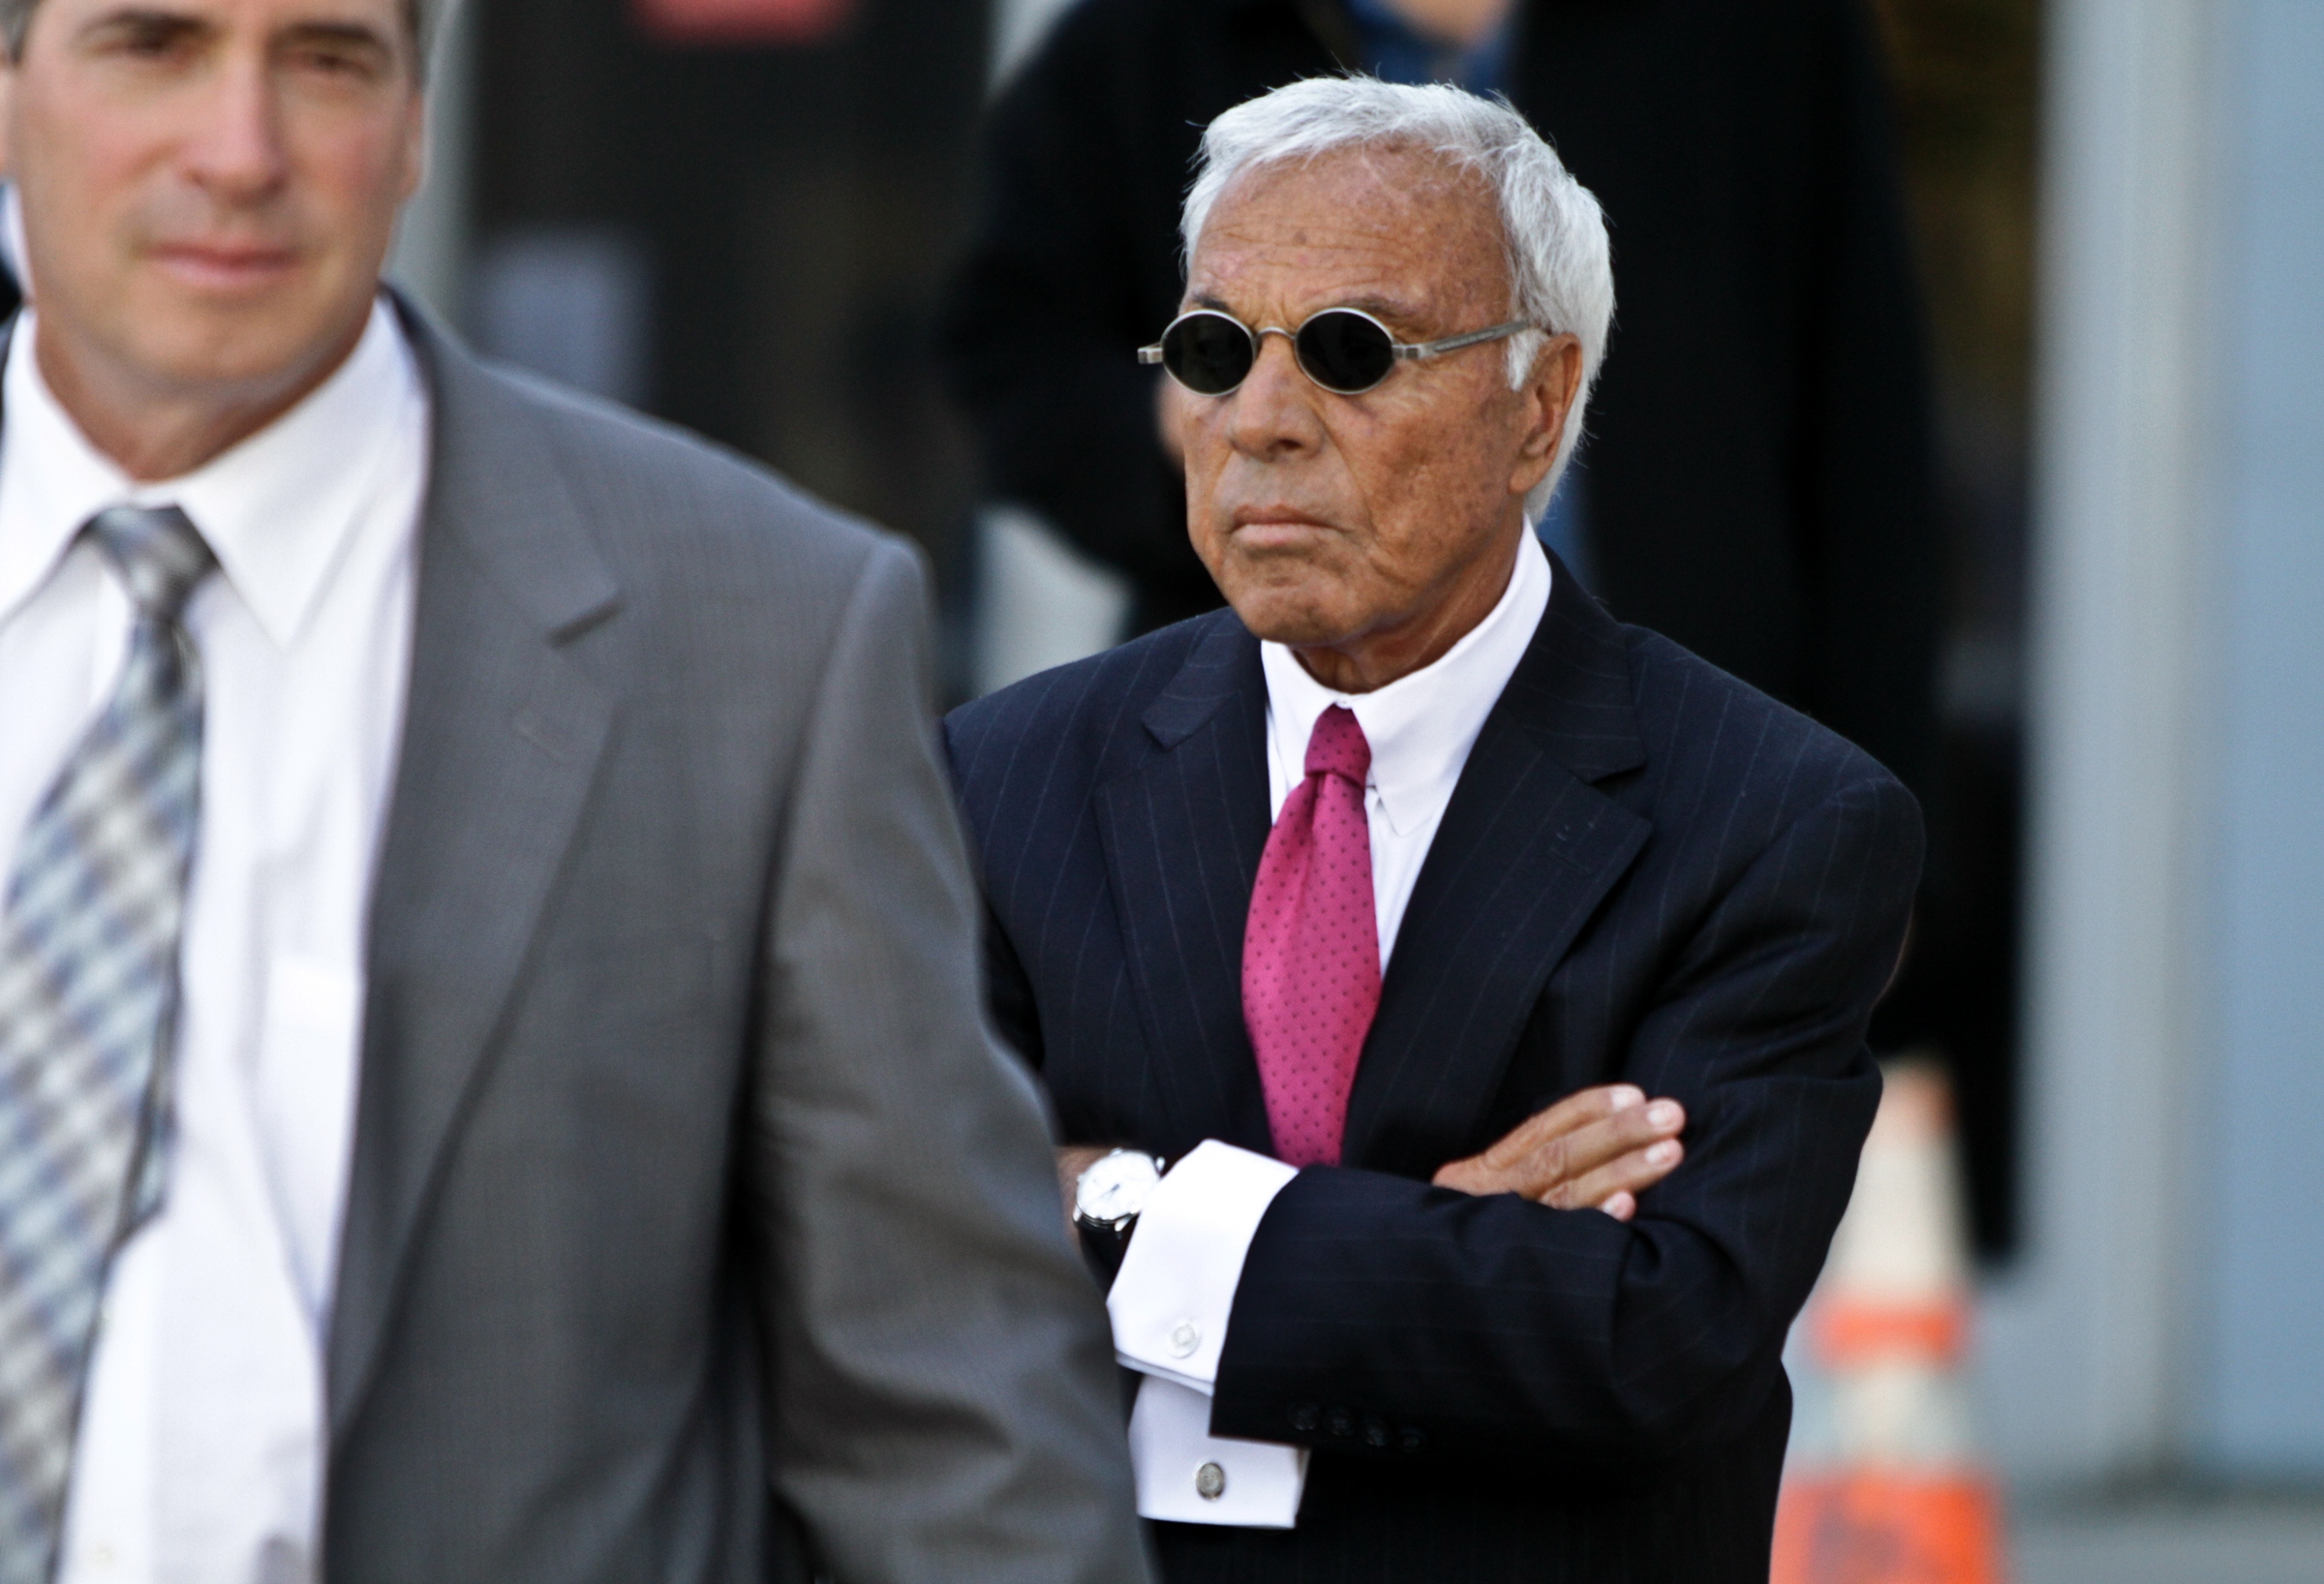 Countrywide Financial former Chief Executive Officer Angelo Mozilo, in dark glasses, emerges from Superior Court in Van Nuys, after testifying in the wrongful dismissal suit of a formal top executive of Countrywide Financial on January 18, 2010 in Van Nuys, CA.